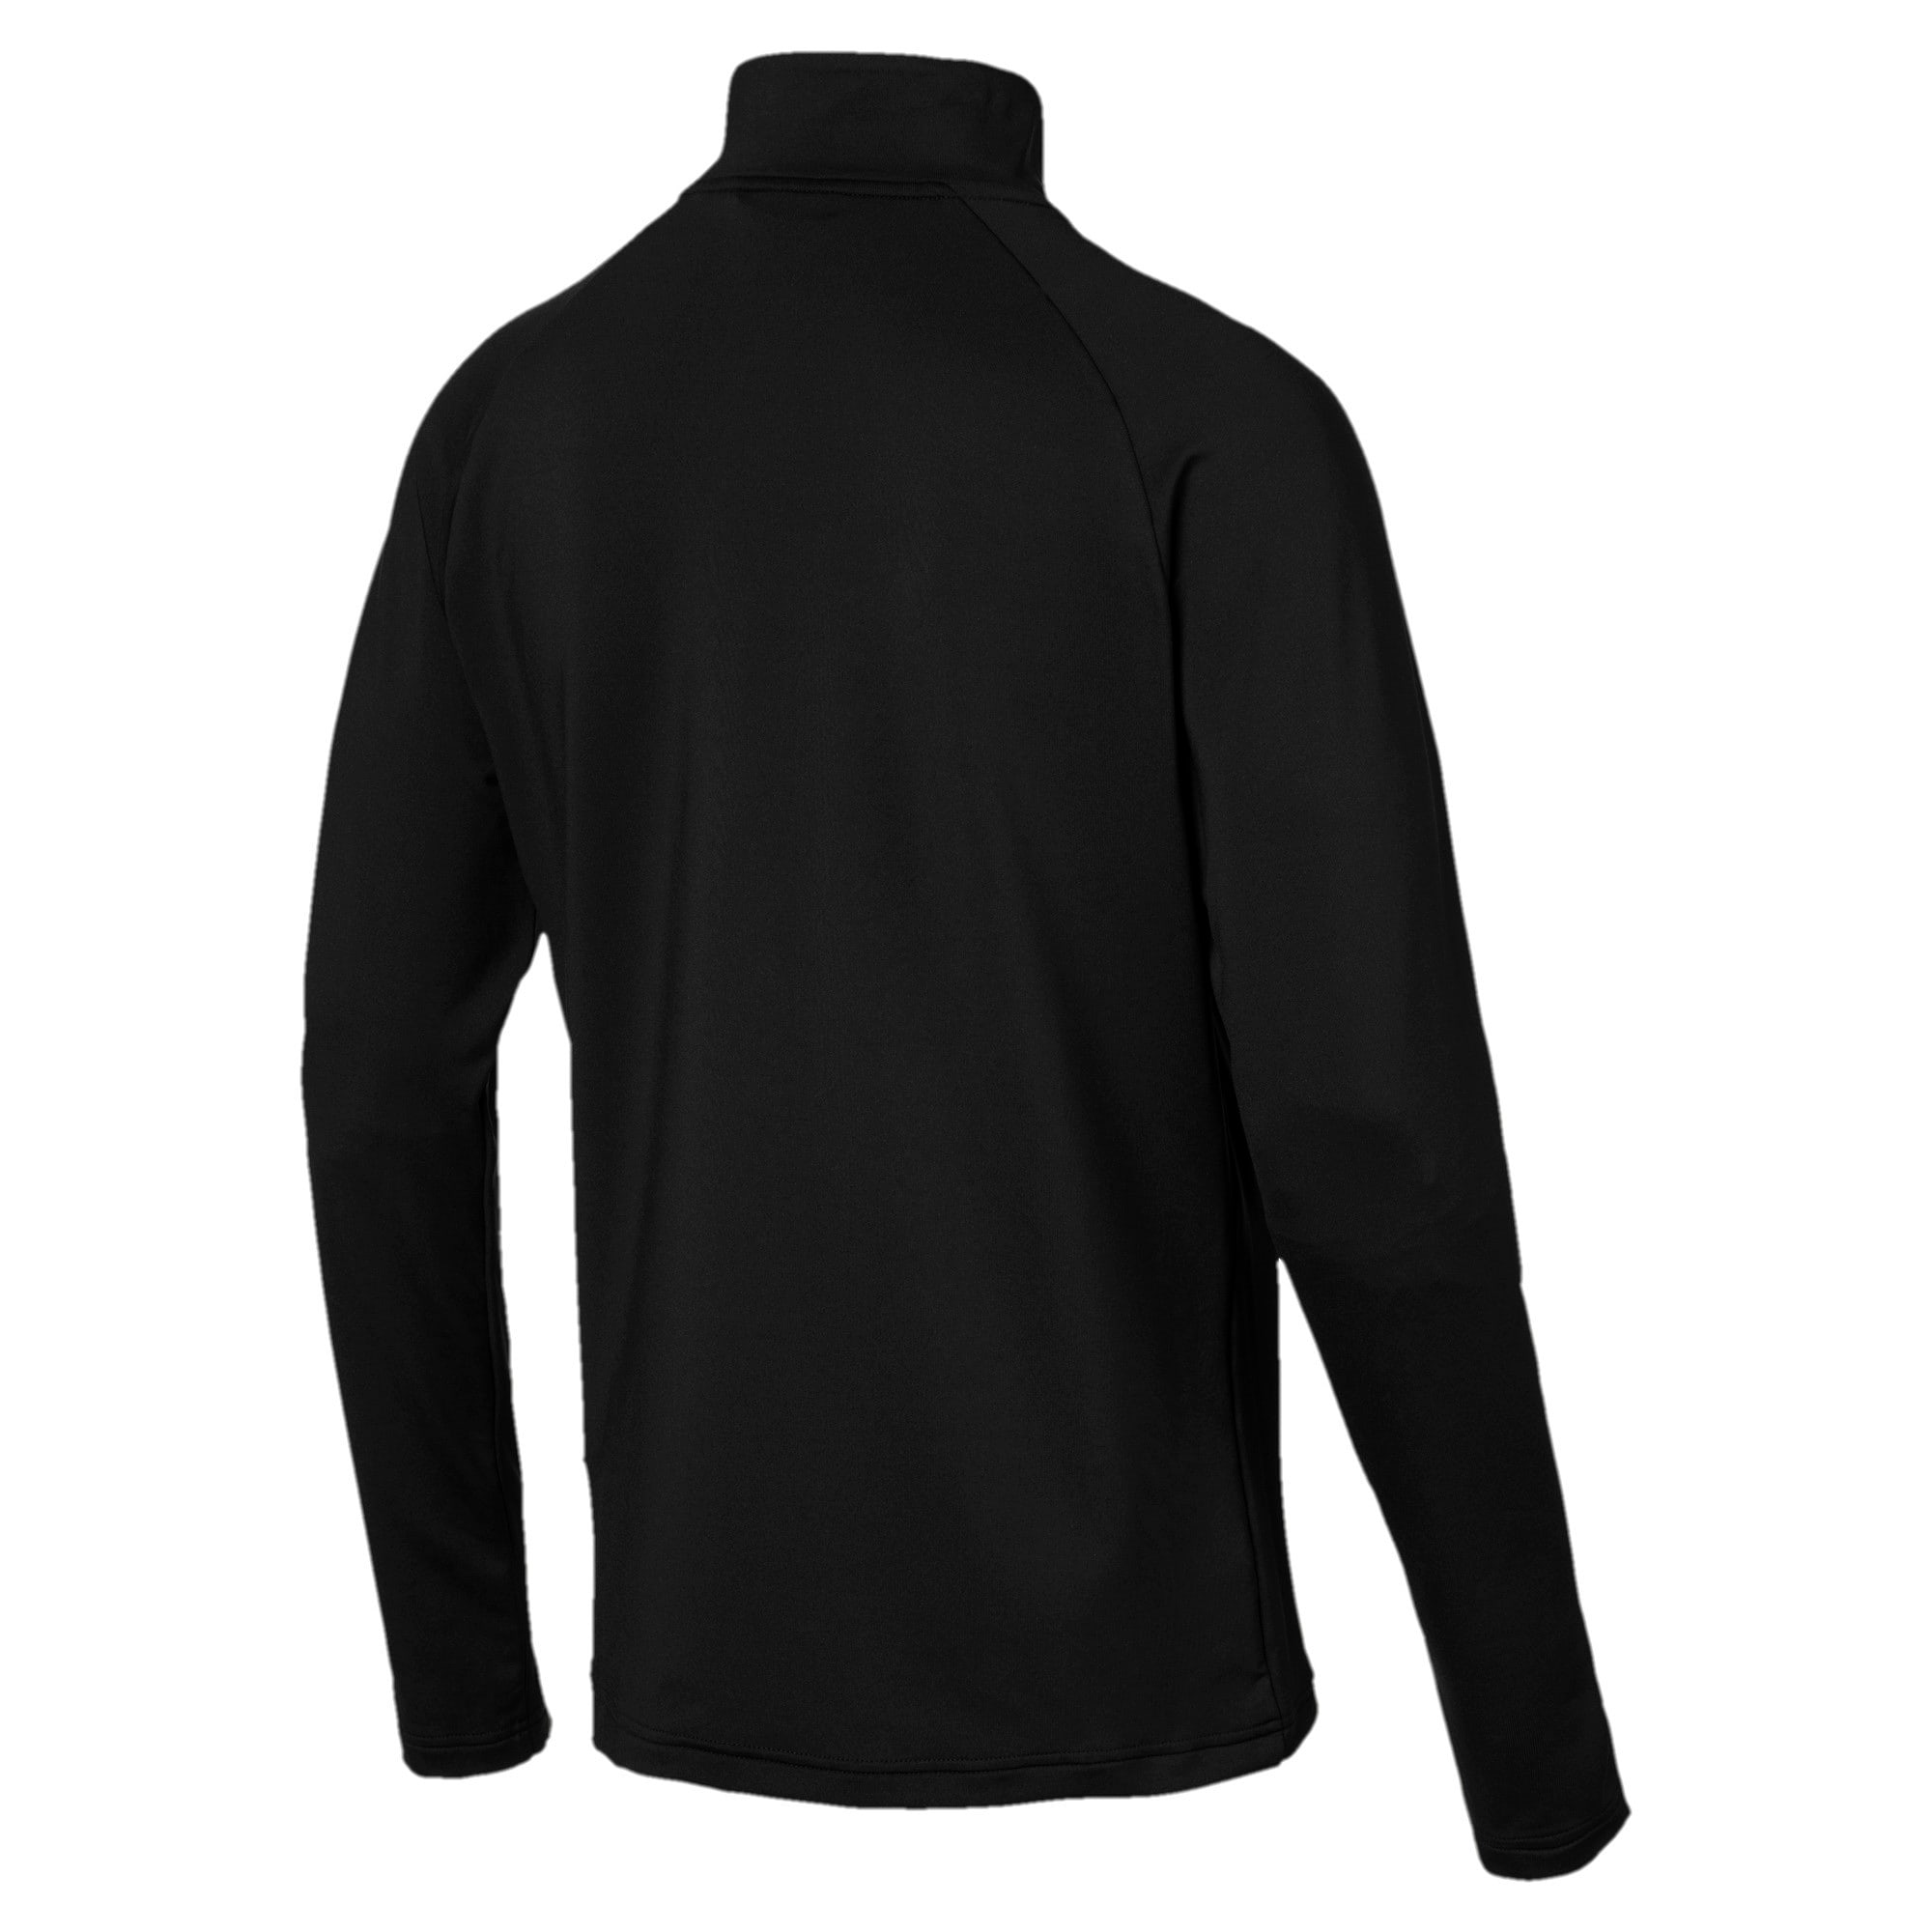 Thumbnail 2 of Active Men's Half Zip Sweater, Puma Black, medium